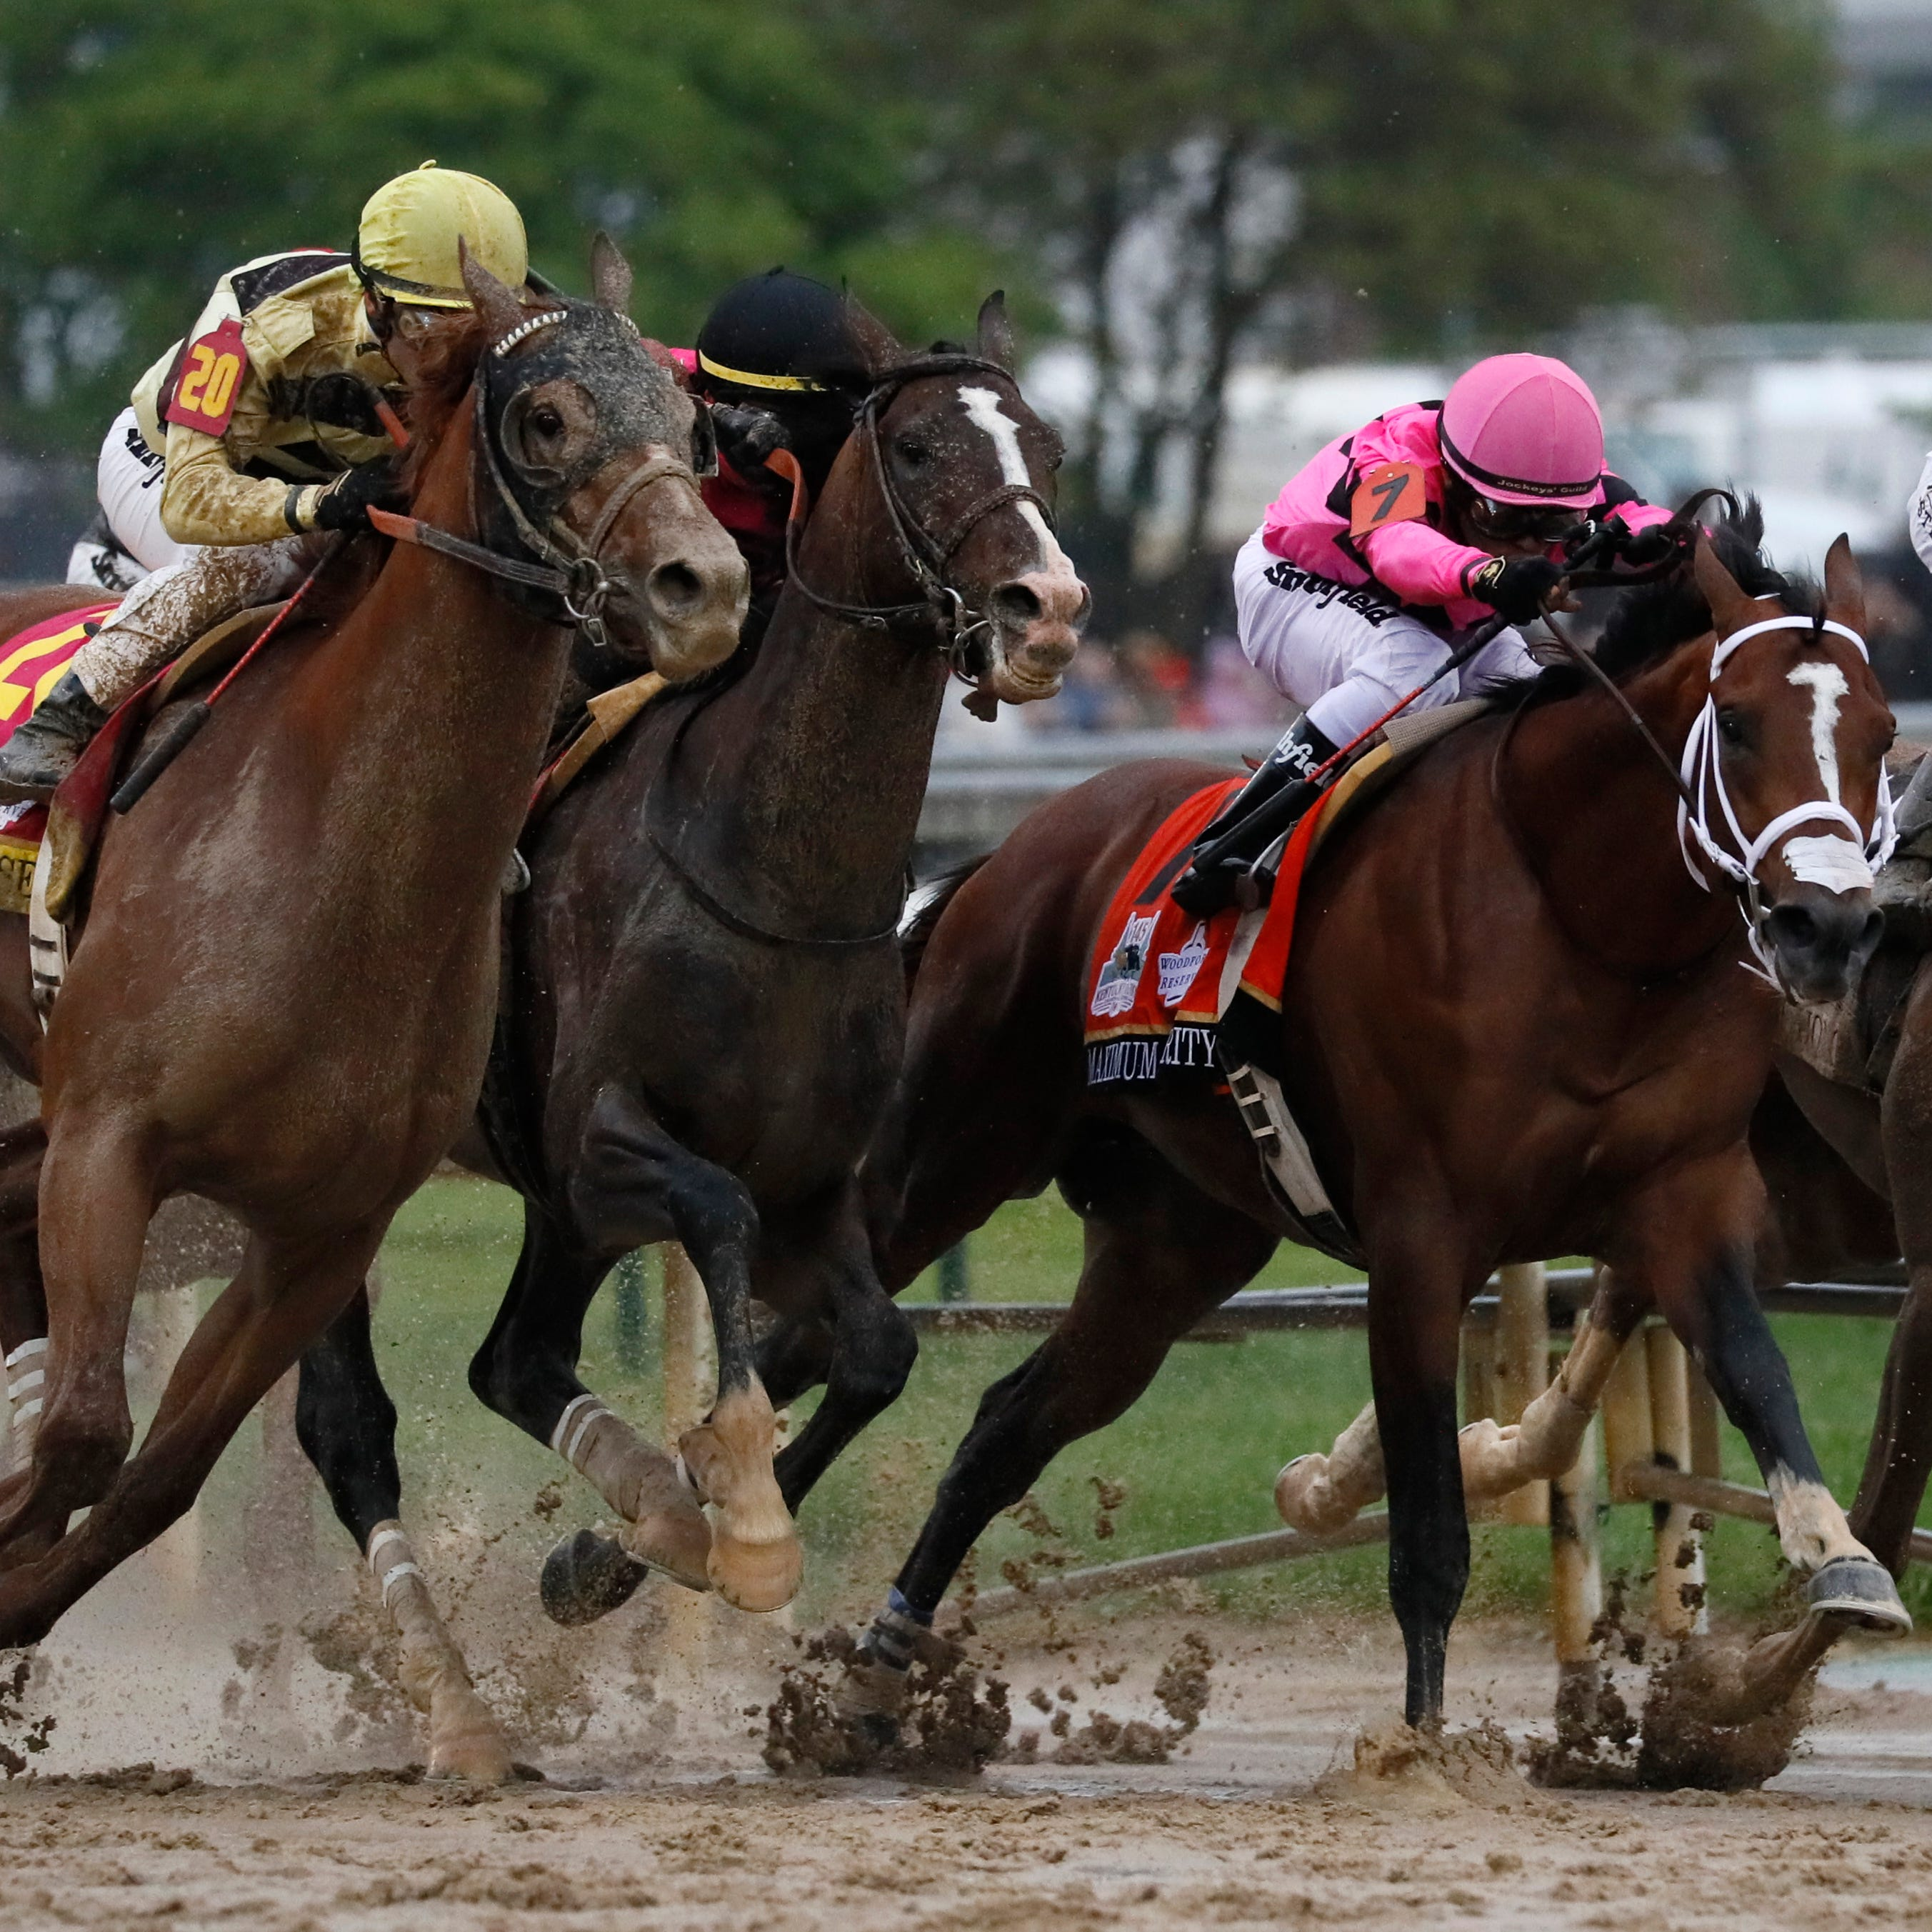 Maximum Security heads to NJ after Kentucky Derby disqualification, skipping Preakness